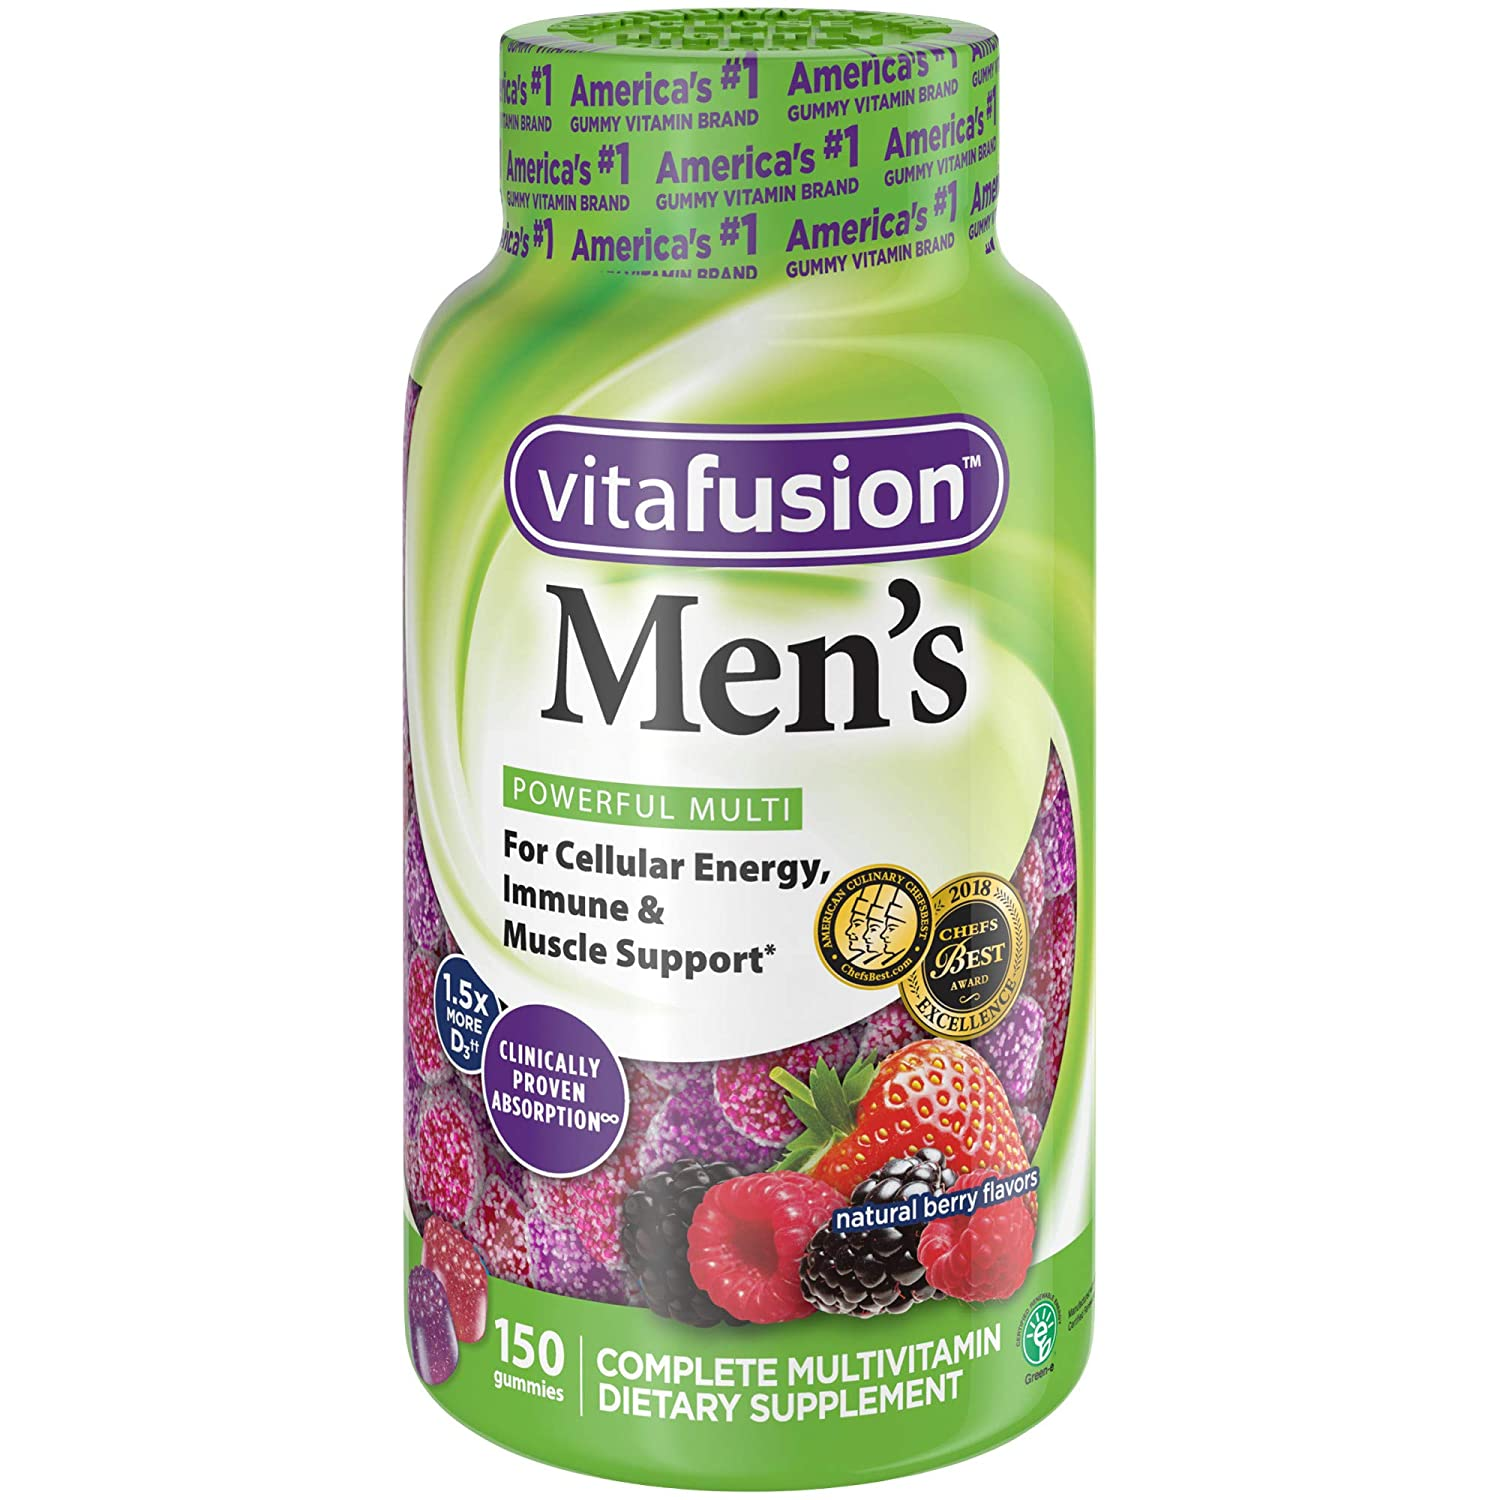 Best Multivitamin For Men >> Vitafusion Men S Gummy Vitamins 150 Count Multivitamin For Men